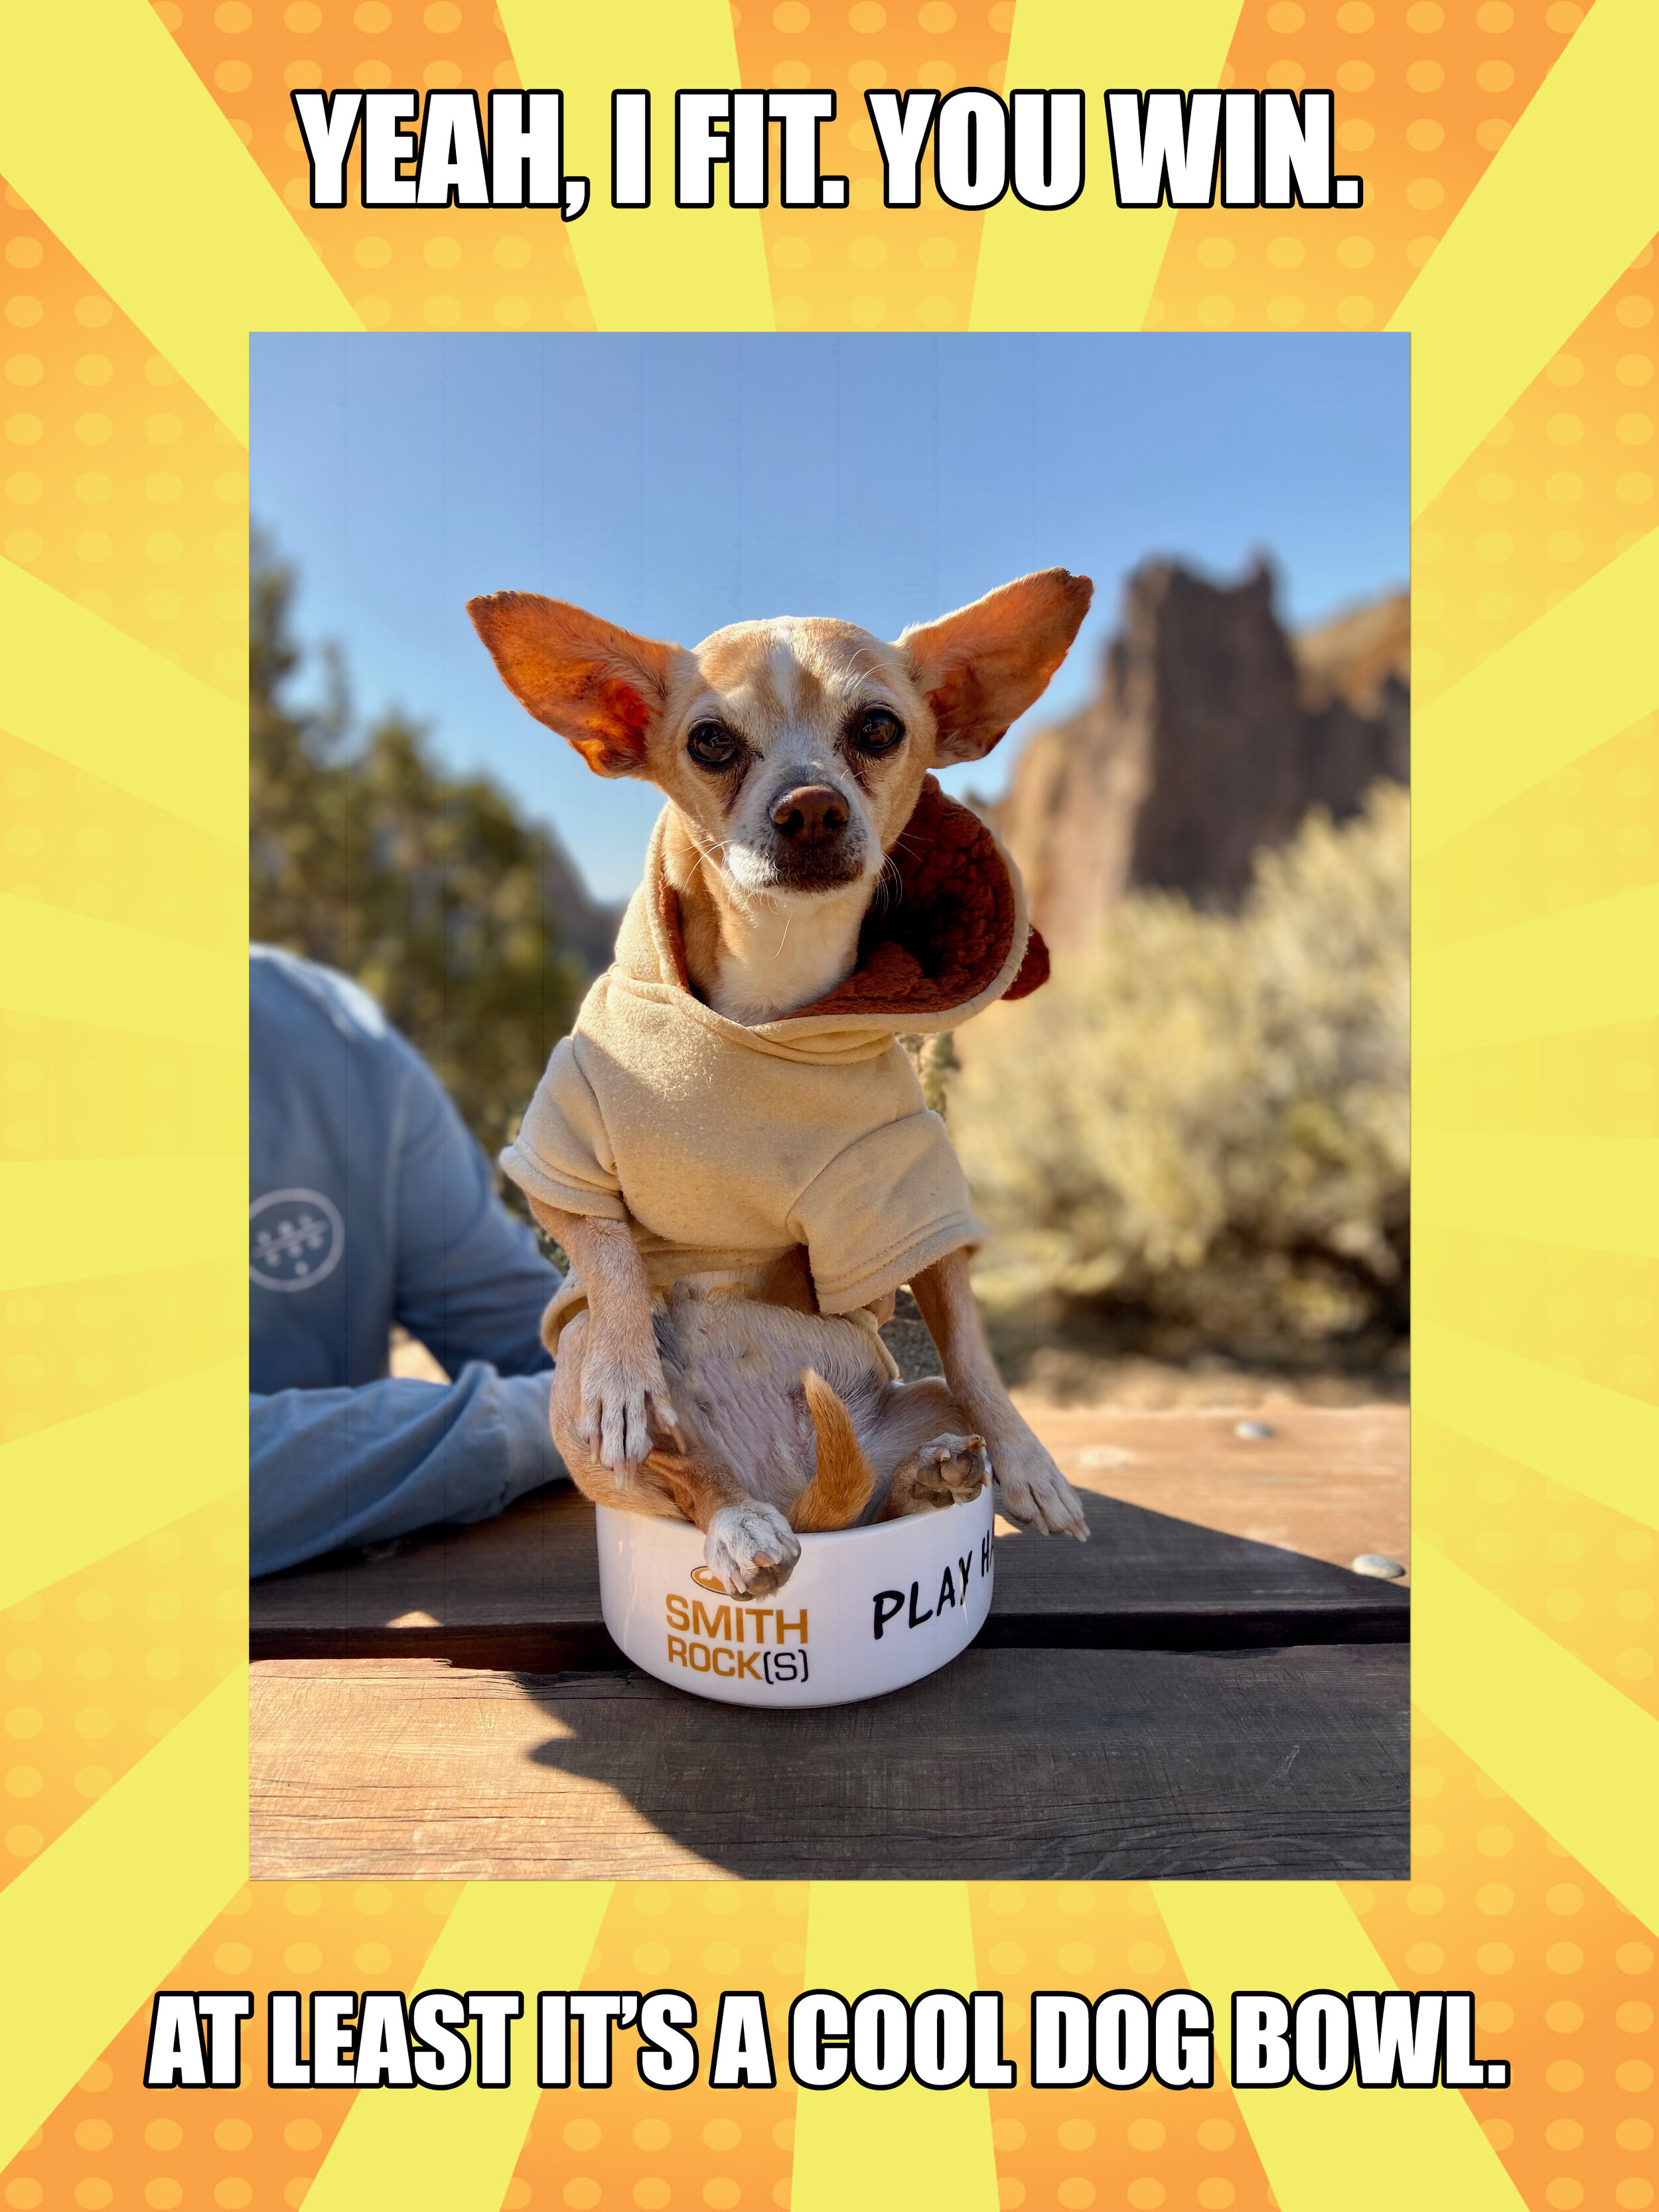 AND NO, TICO WAS NOT HARMED DURING THIS PHOTO SHOOT.  AVAILABLE ONLINE ONLY AT OUR SMITH ROCK SHOP.   FREE STANDARD DOMESTIC SHIPPING.